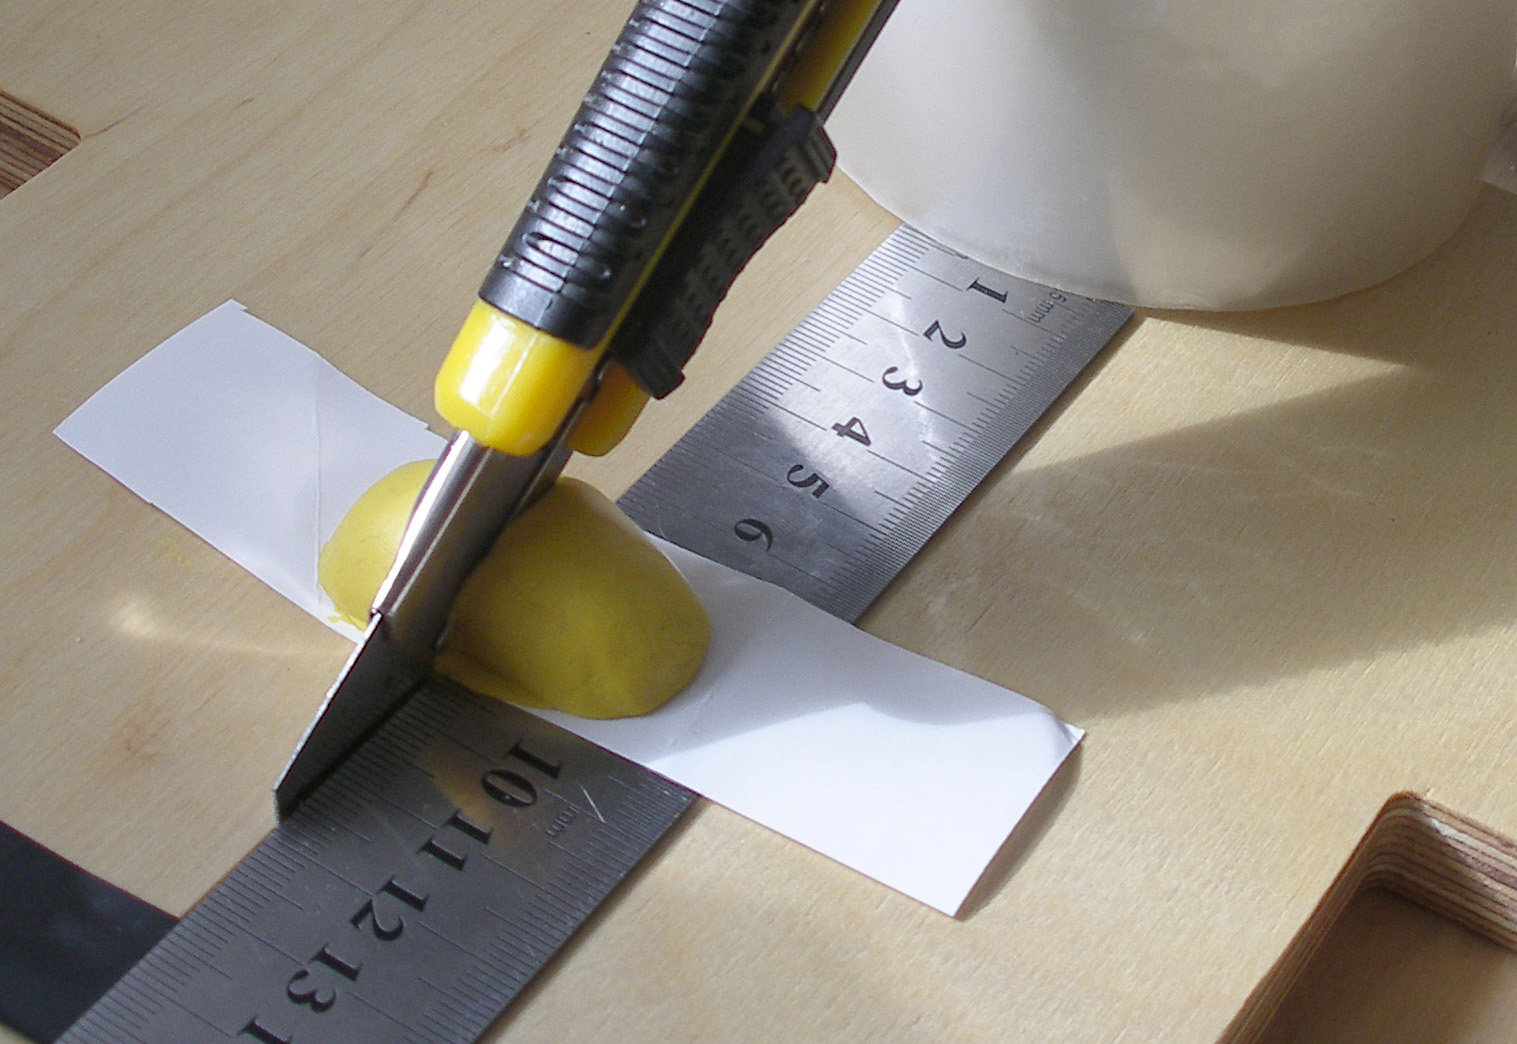 Picture of Sugru Aplication for Cutting at Right Angles Using a Knife